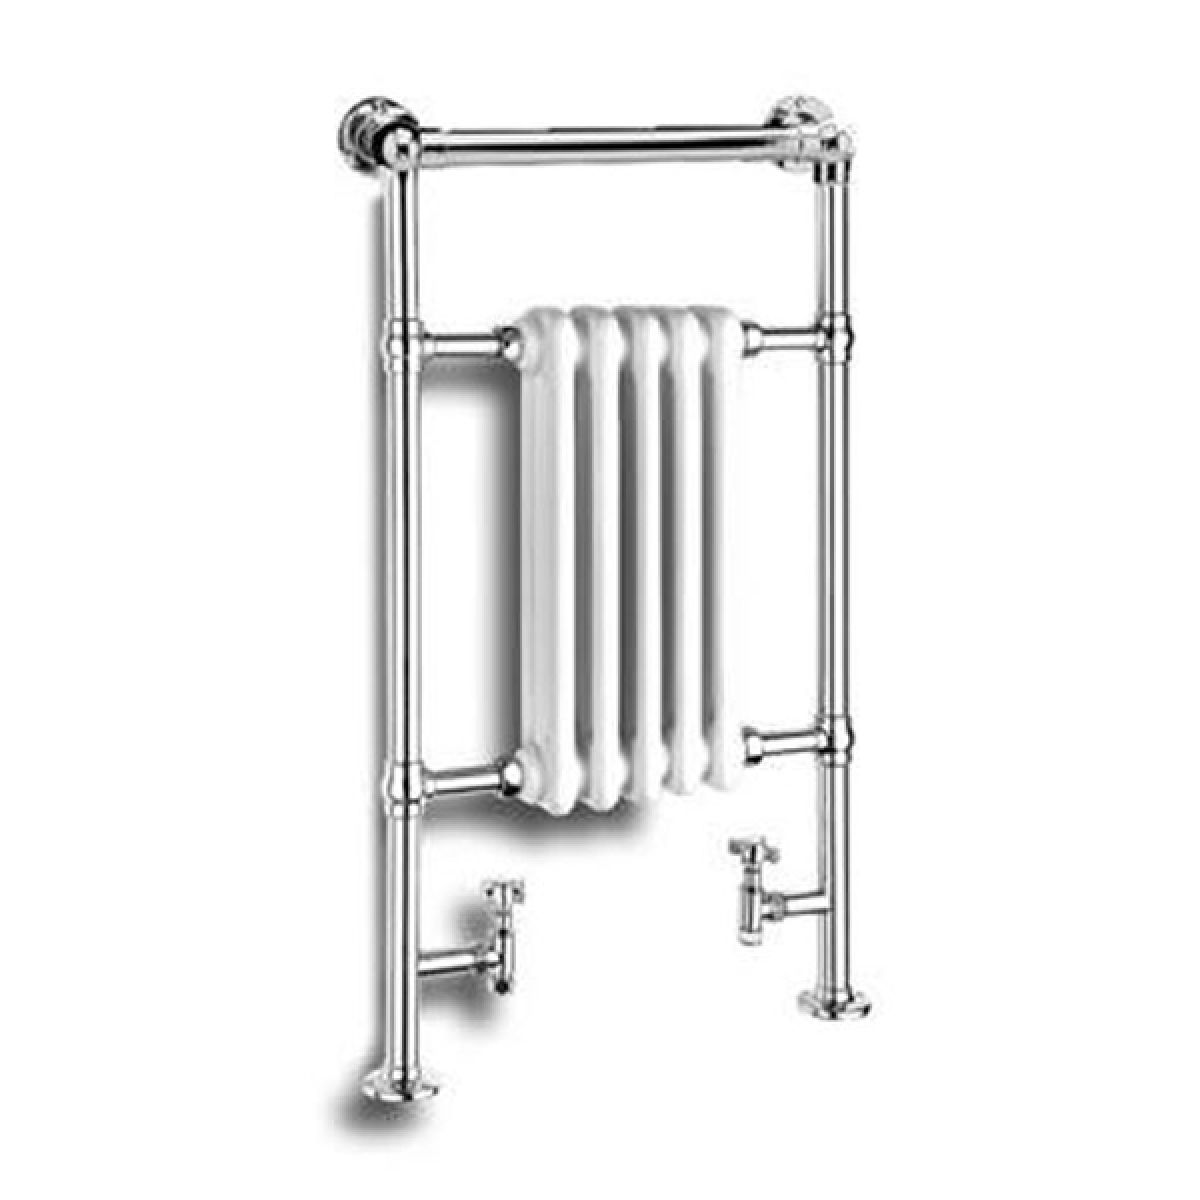 Reina Oxford Traditional Radiator and Towel Rail 960 x 538mm